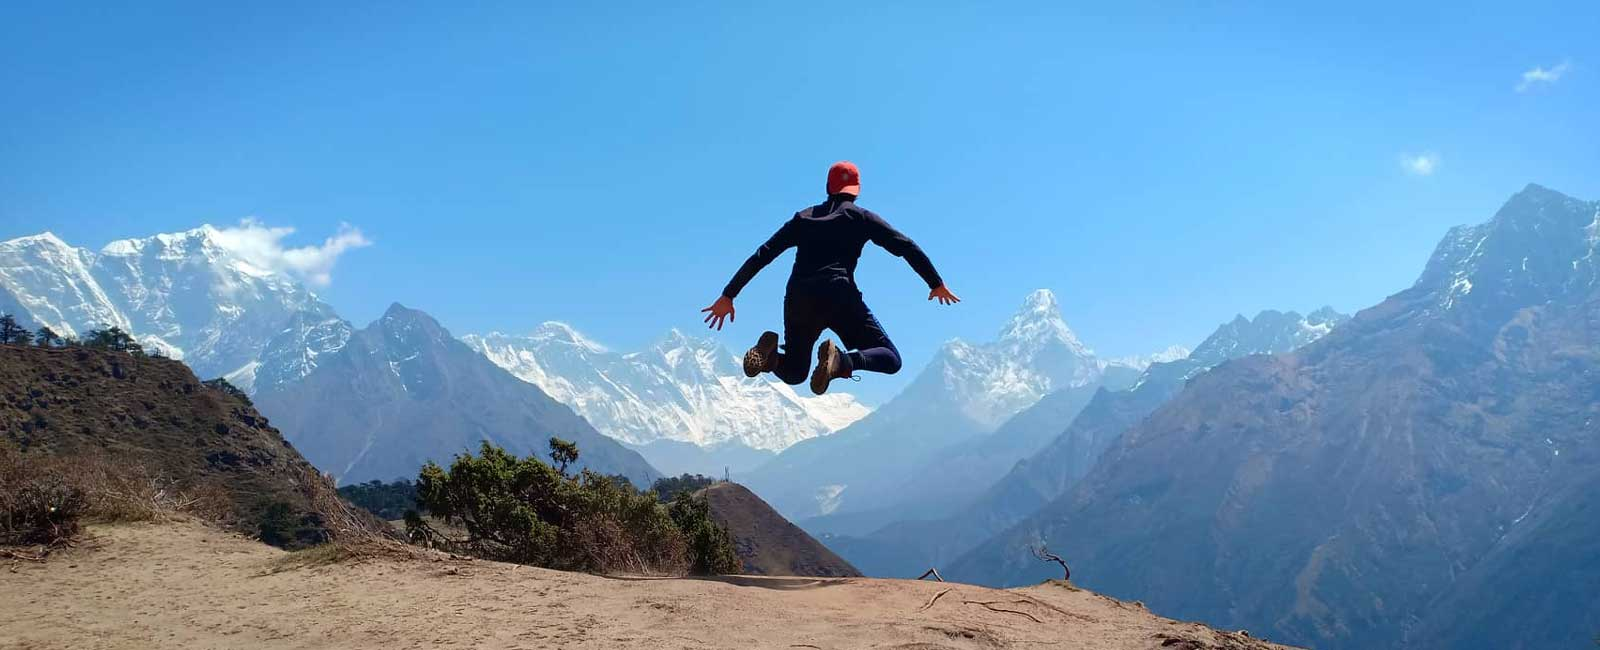 10 Days Everest Base Camp Trek for Experienced Hikers